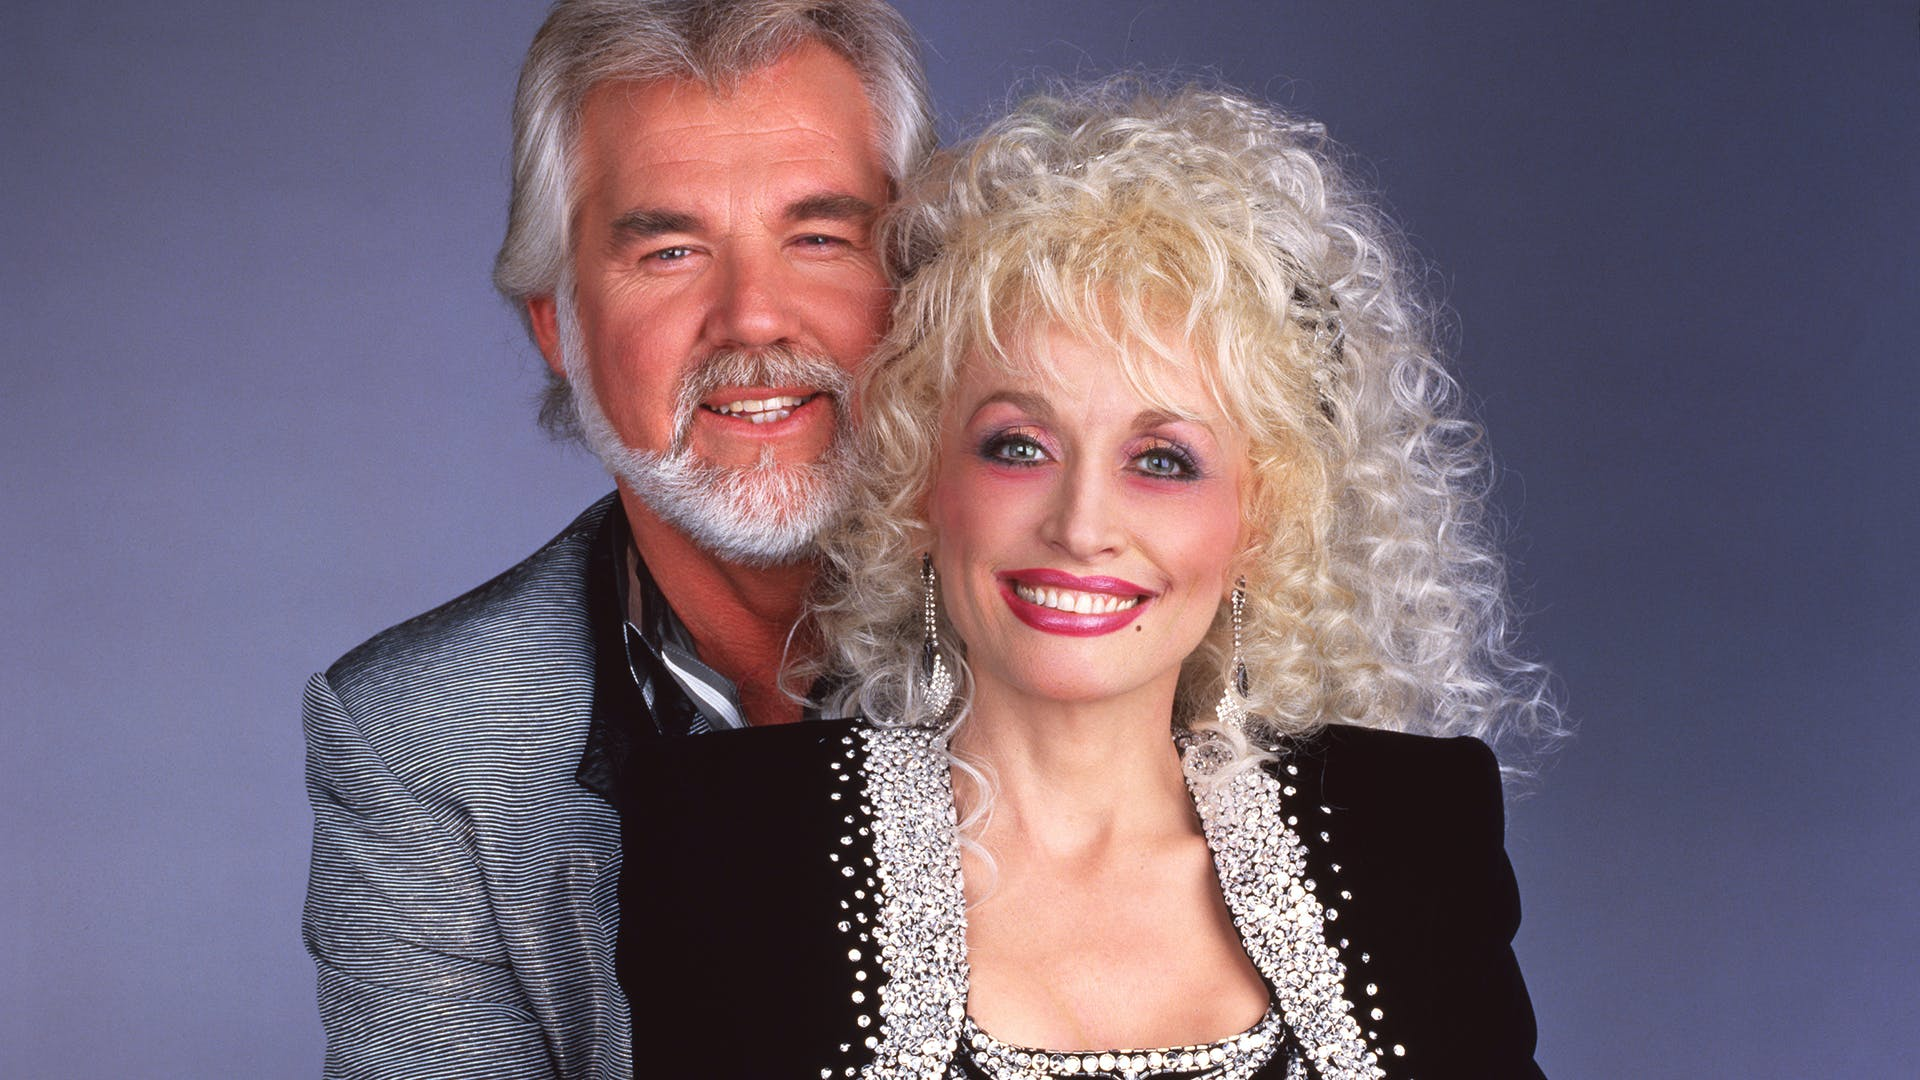 """dolly-parton-dishes-on-her-very-private-marriage-with-longtime-husband-carl-dean-jokes-about-theories-hes-made-up"""